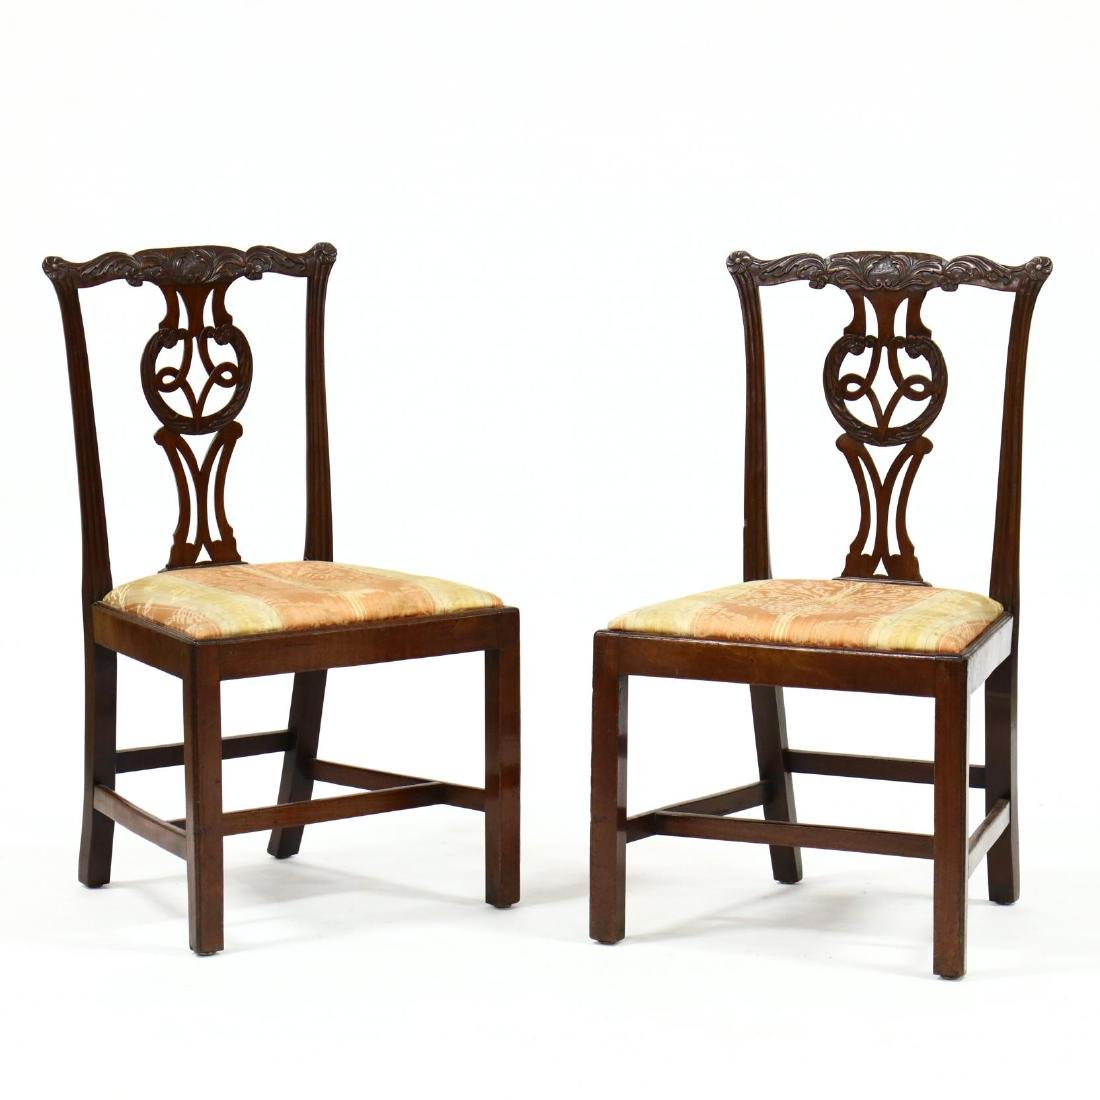 Pair of English Chippendale Carved Mahogany Side Chairs